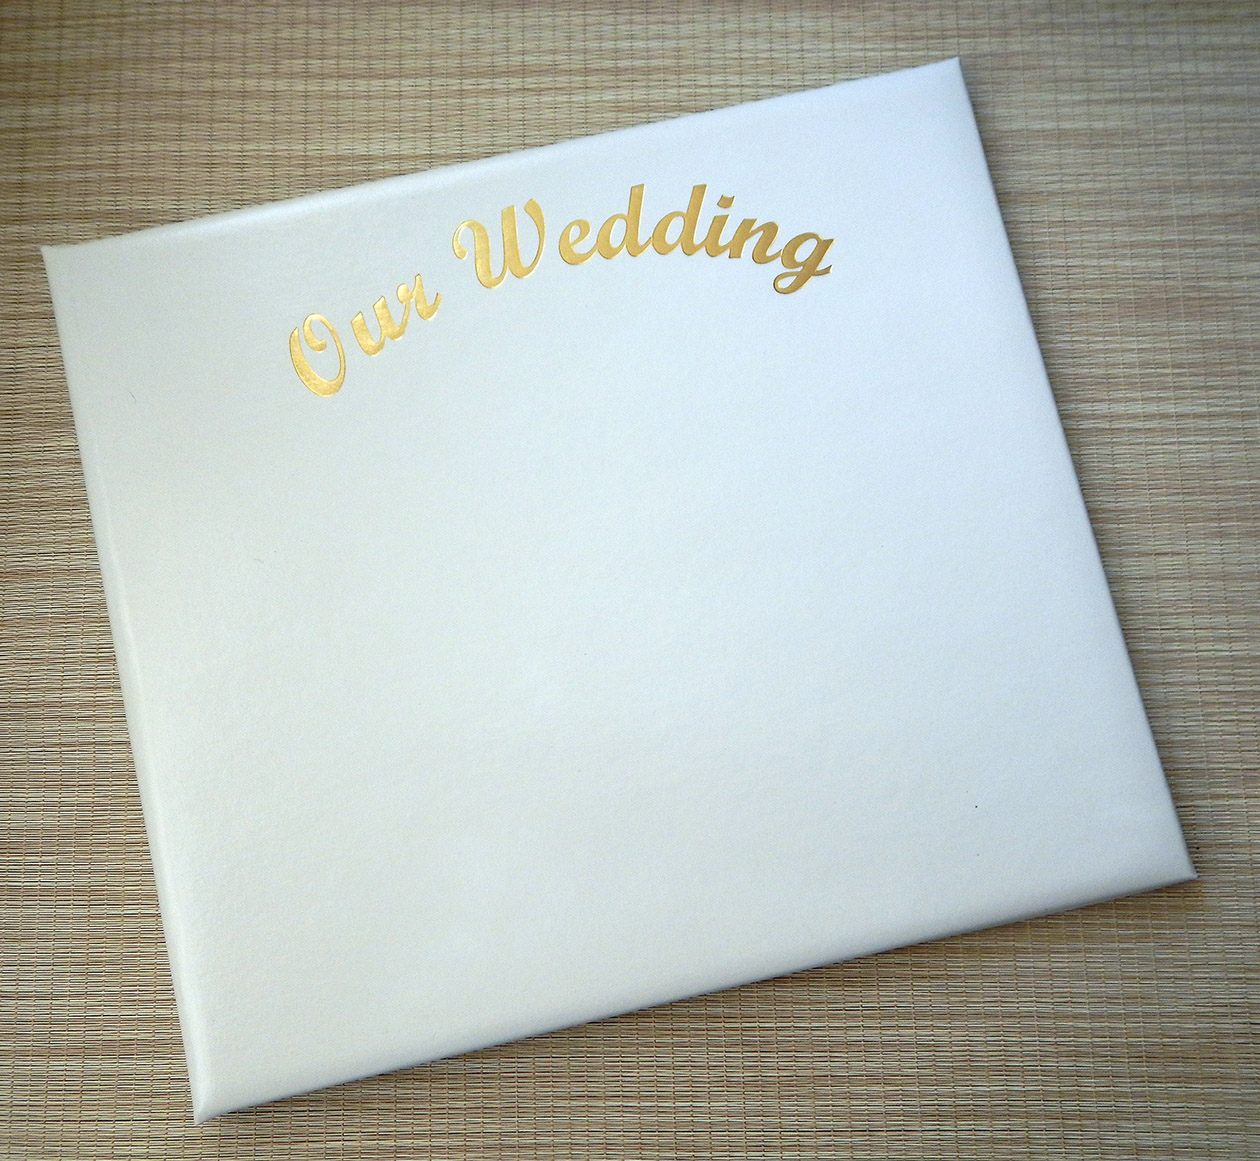 Our Wedding 12 x 12 Scrapbook